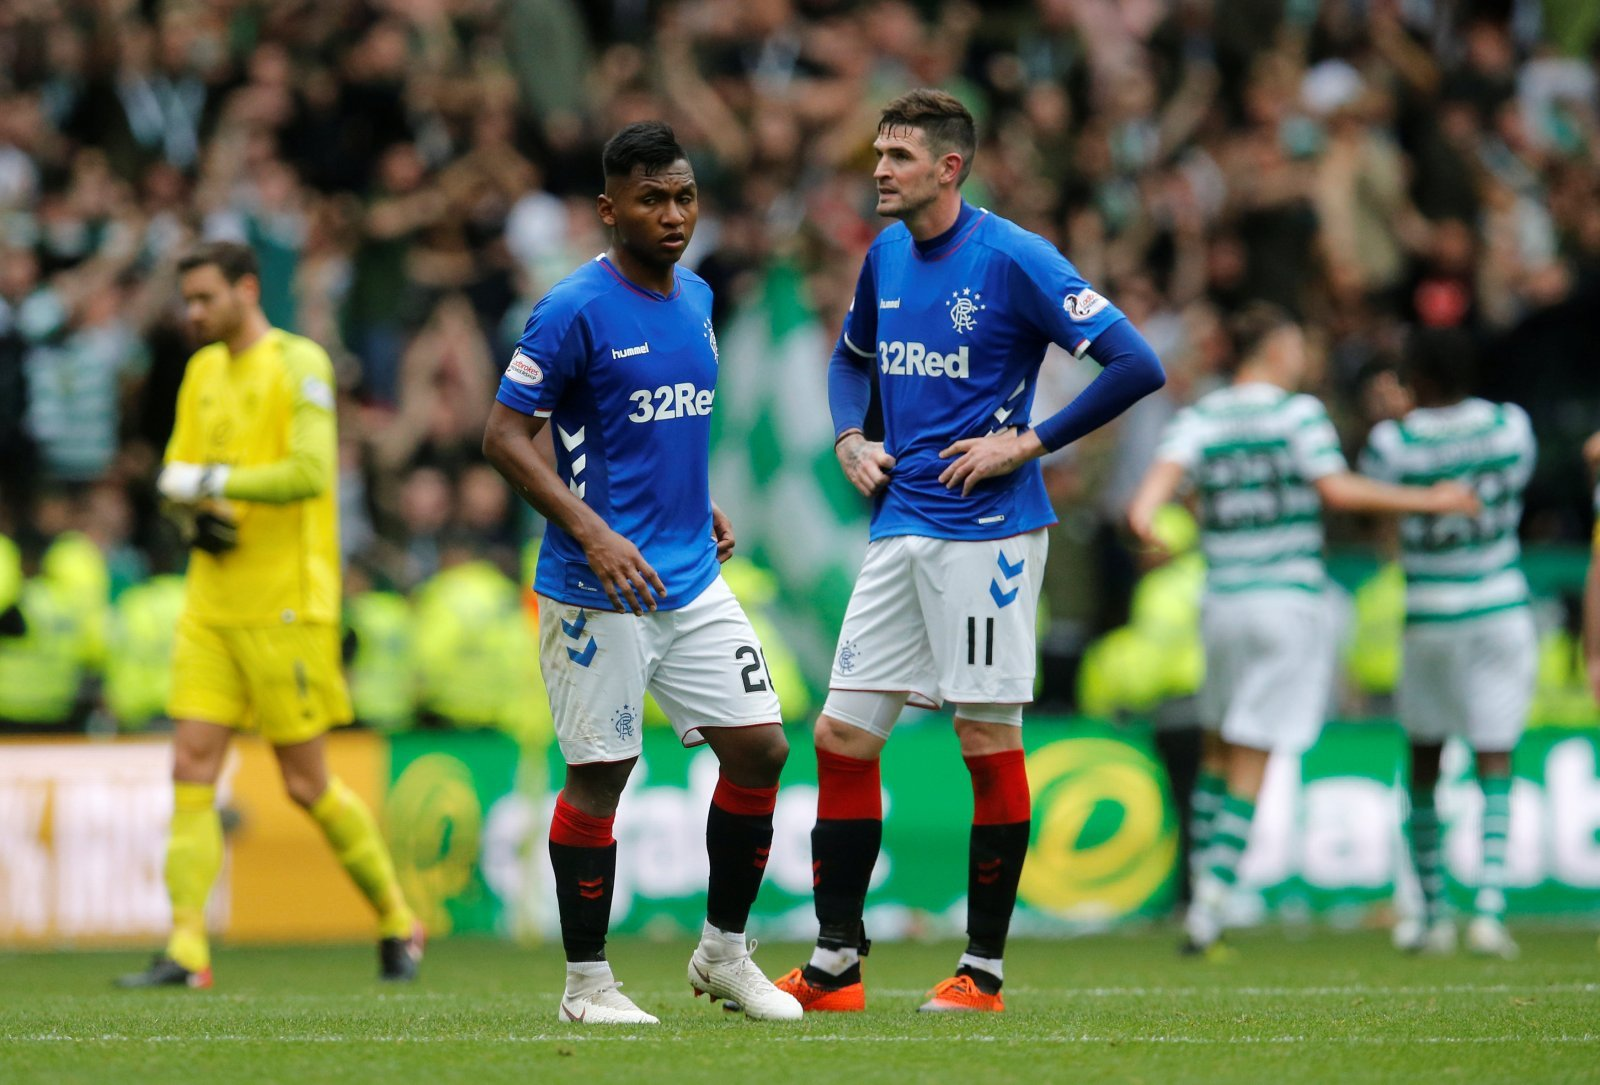 Alfredo Morelos cut from Colombia squad